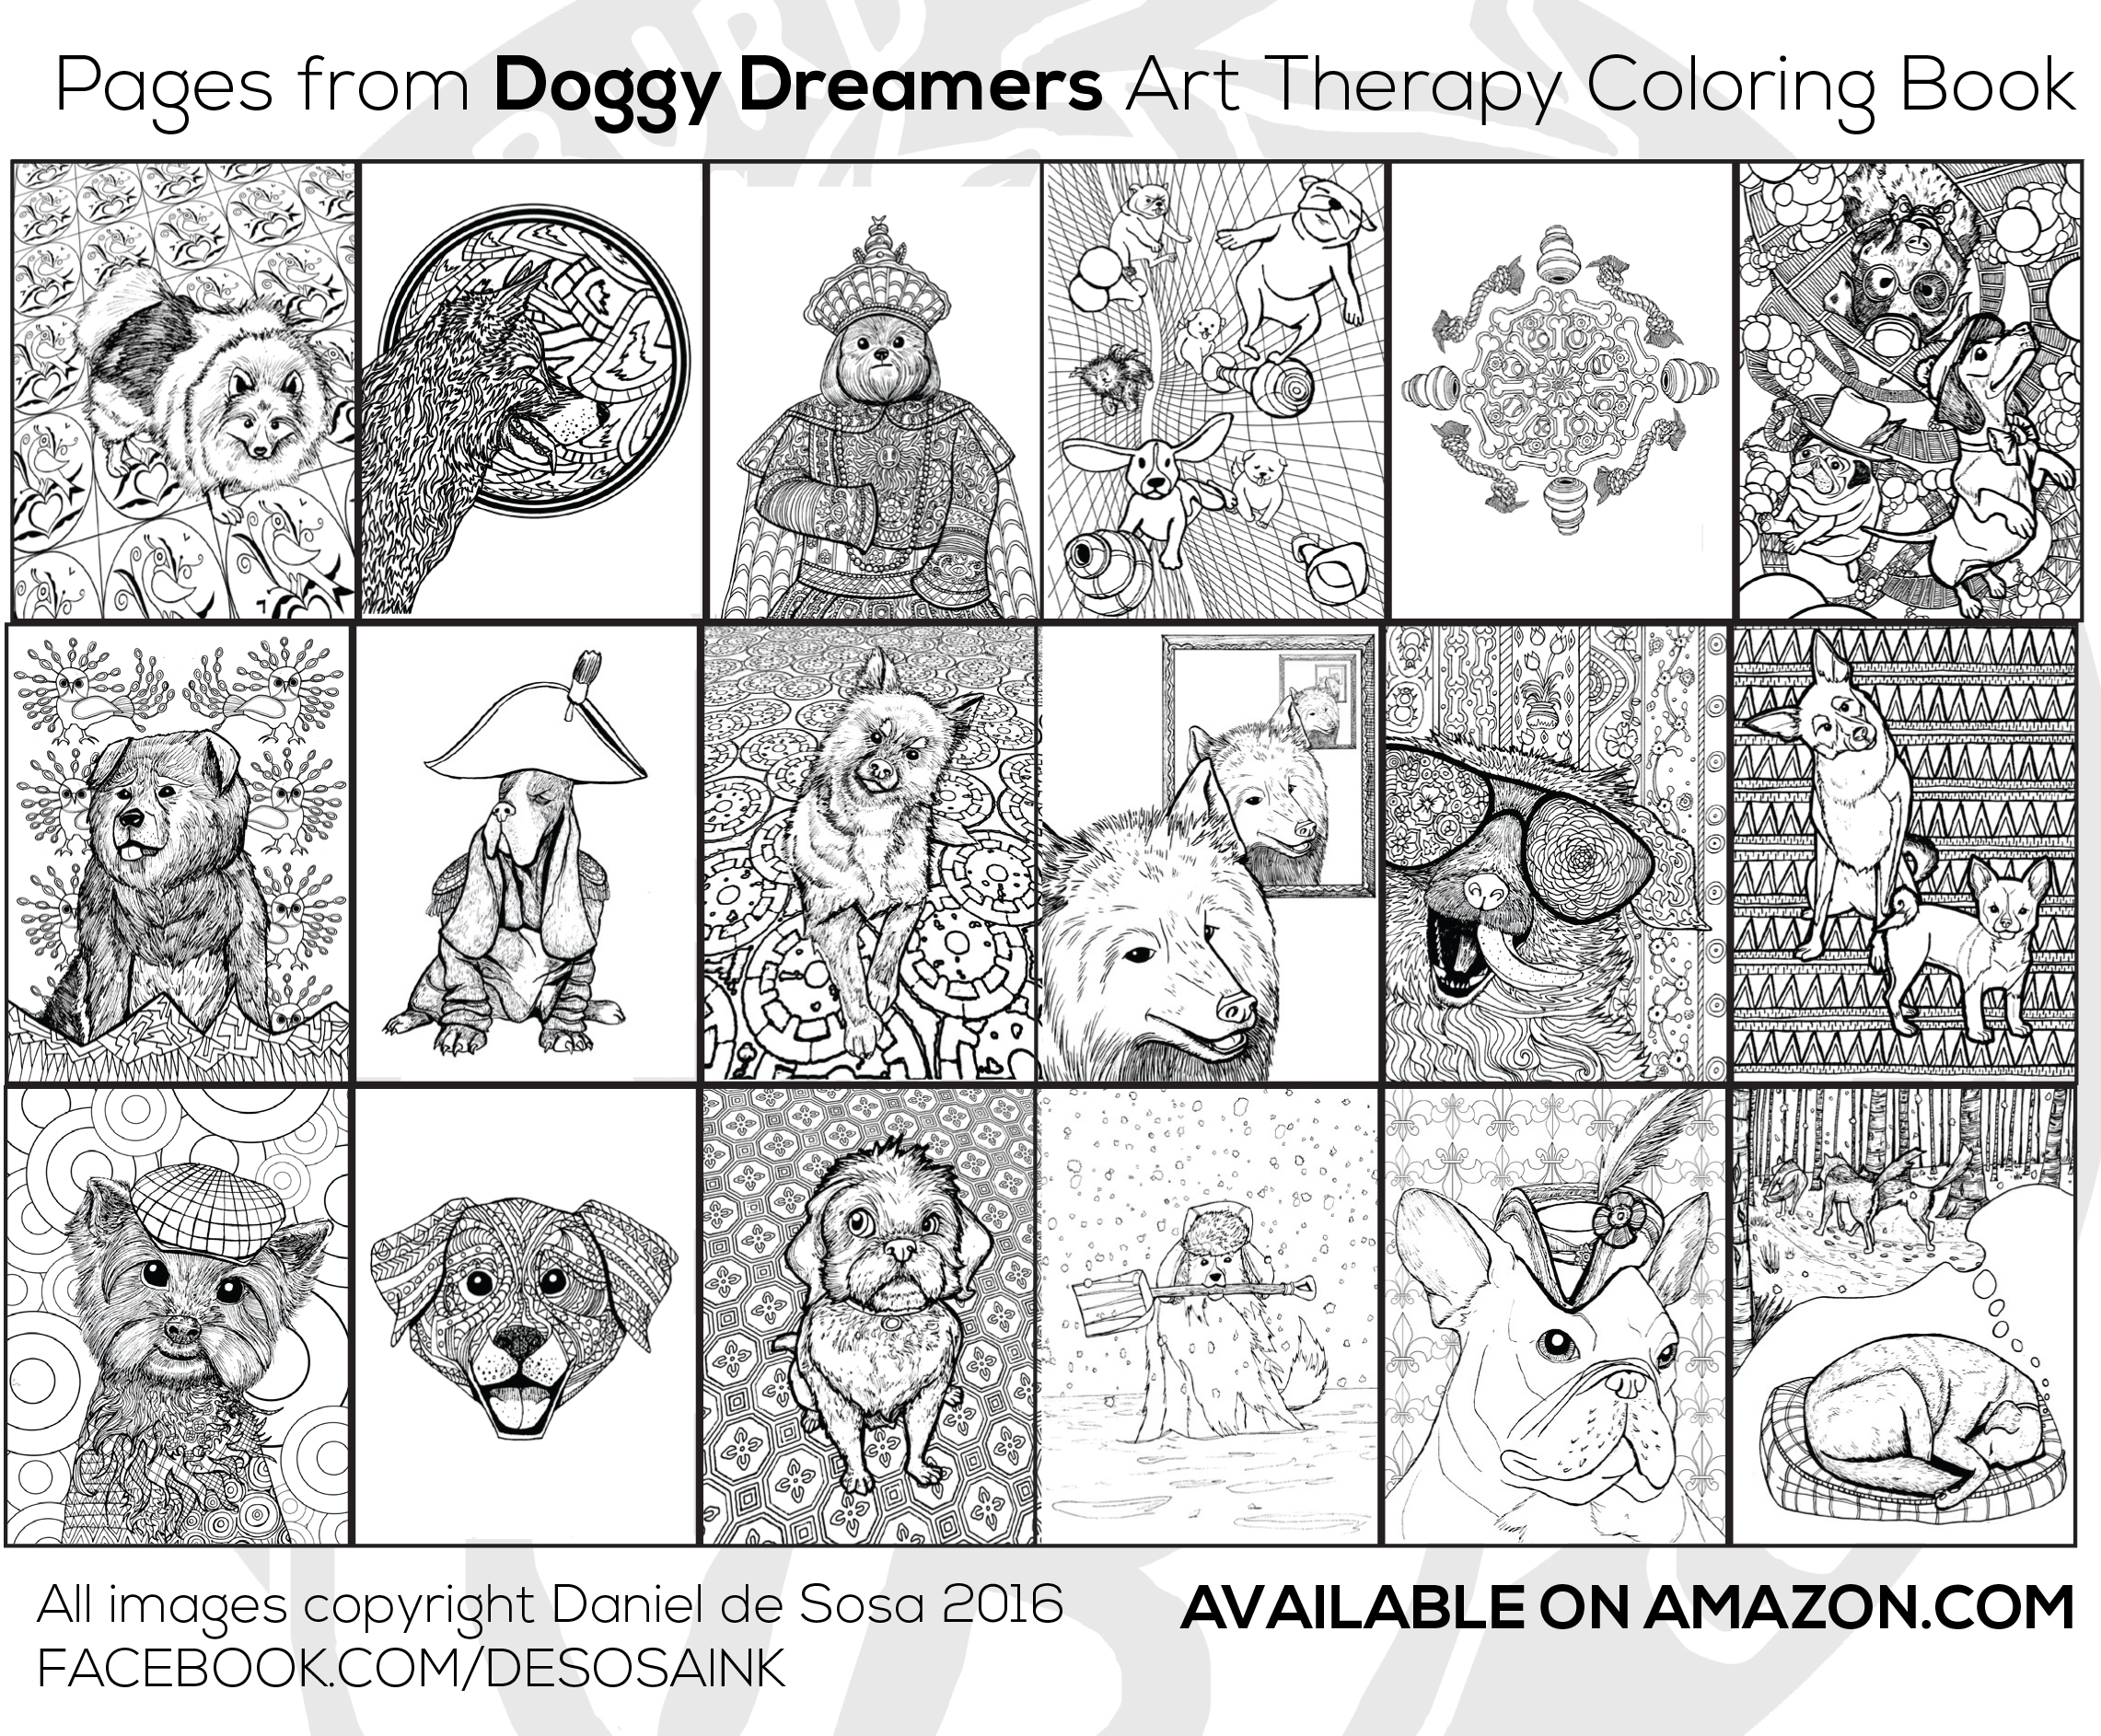 Doggy Dreamers Art Therapy Adult Coloring Book DREAM DELUXE EDITION